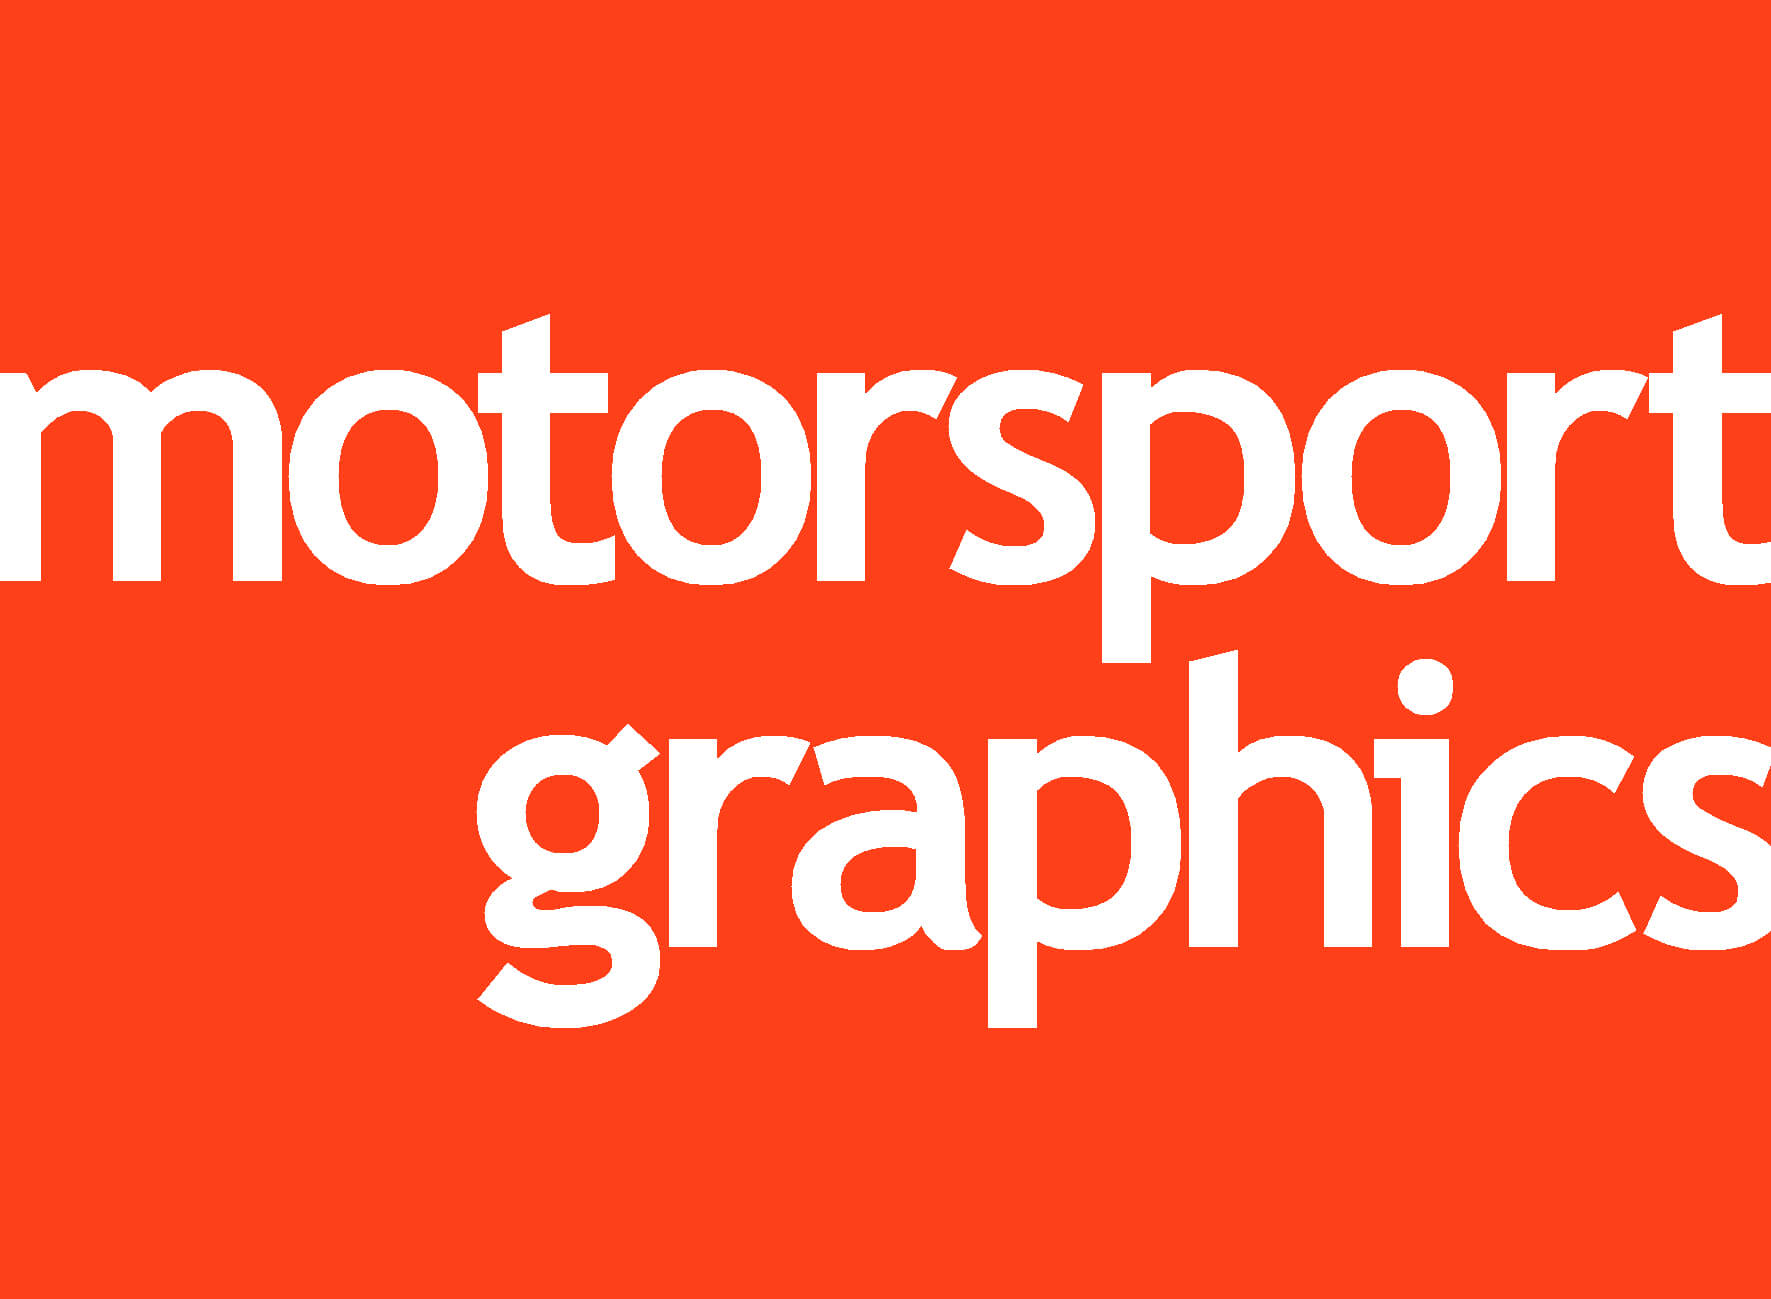 Motorsport Graphics